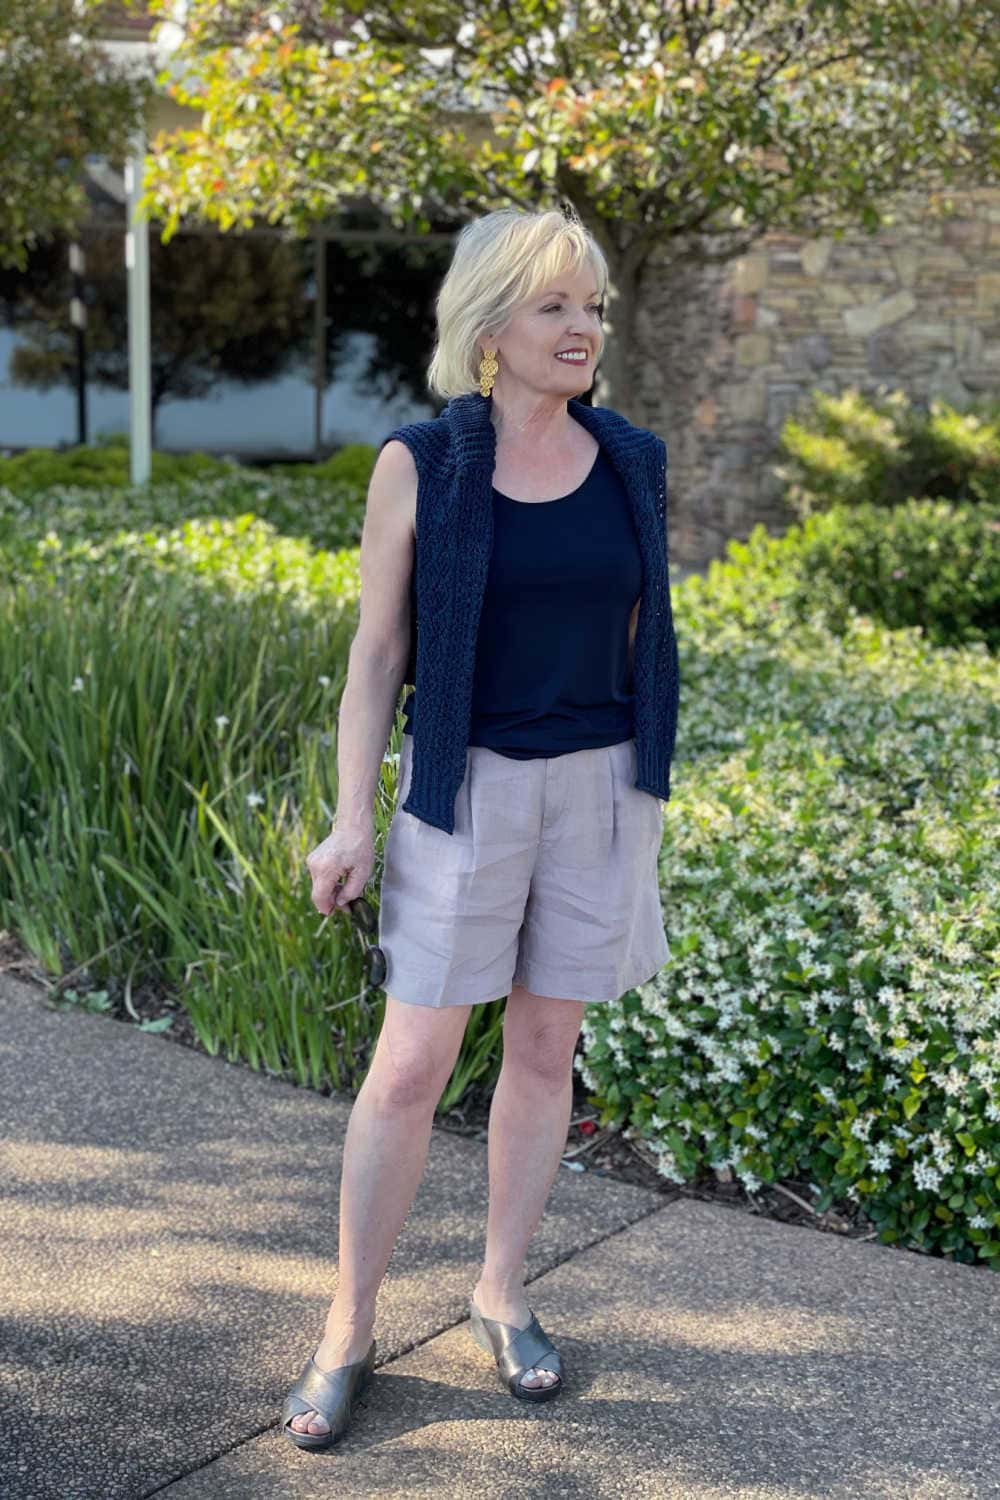 woman standing on path wearing navy blue open weave sweater and shorts